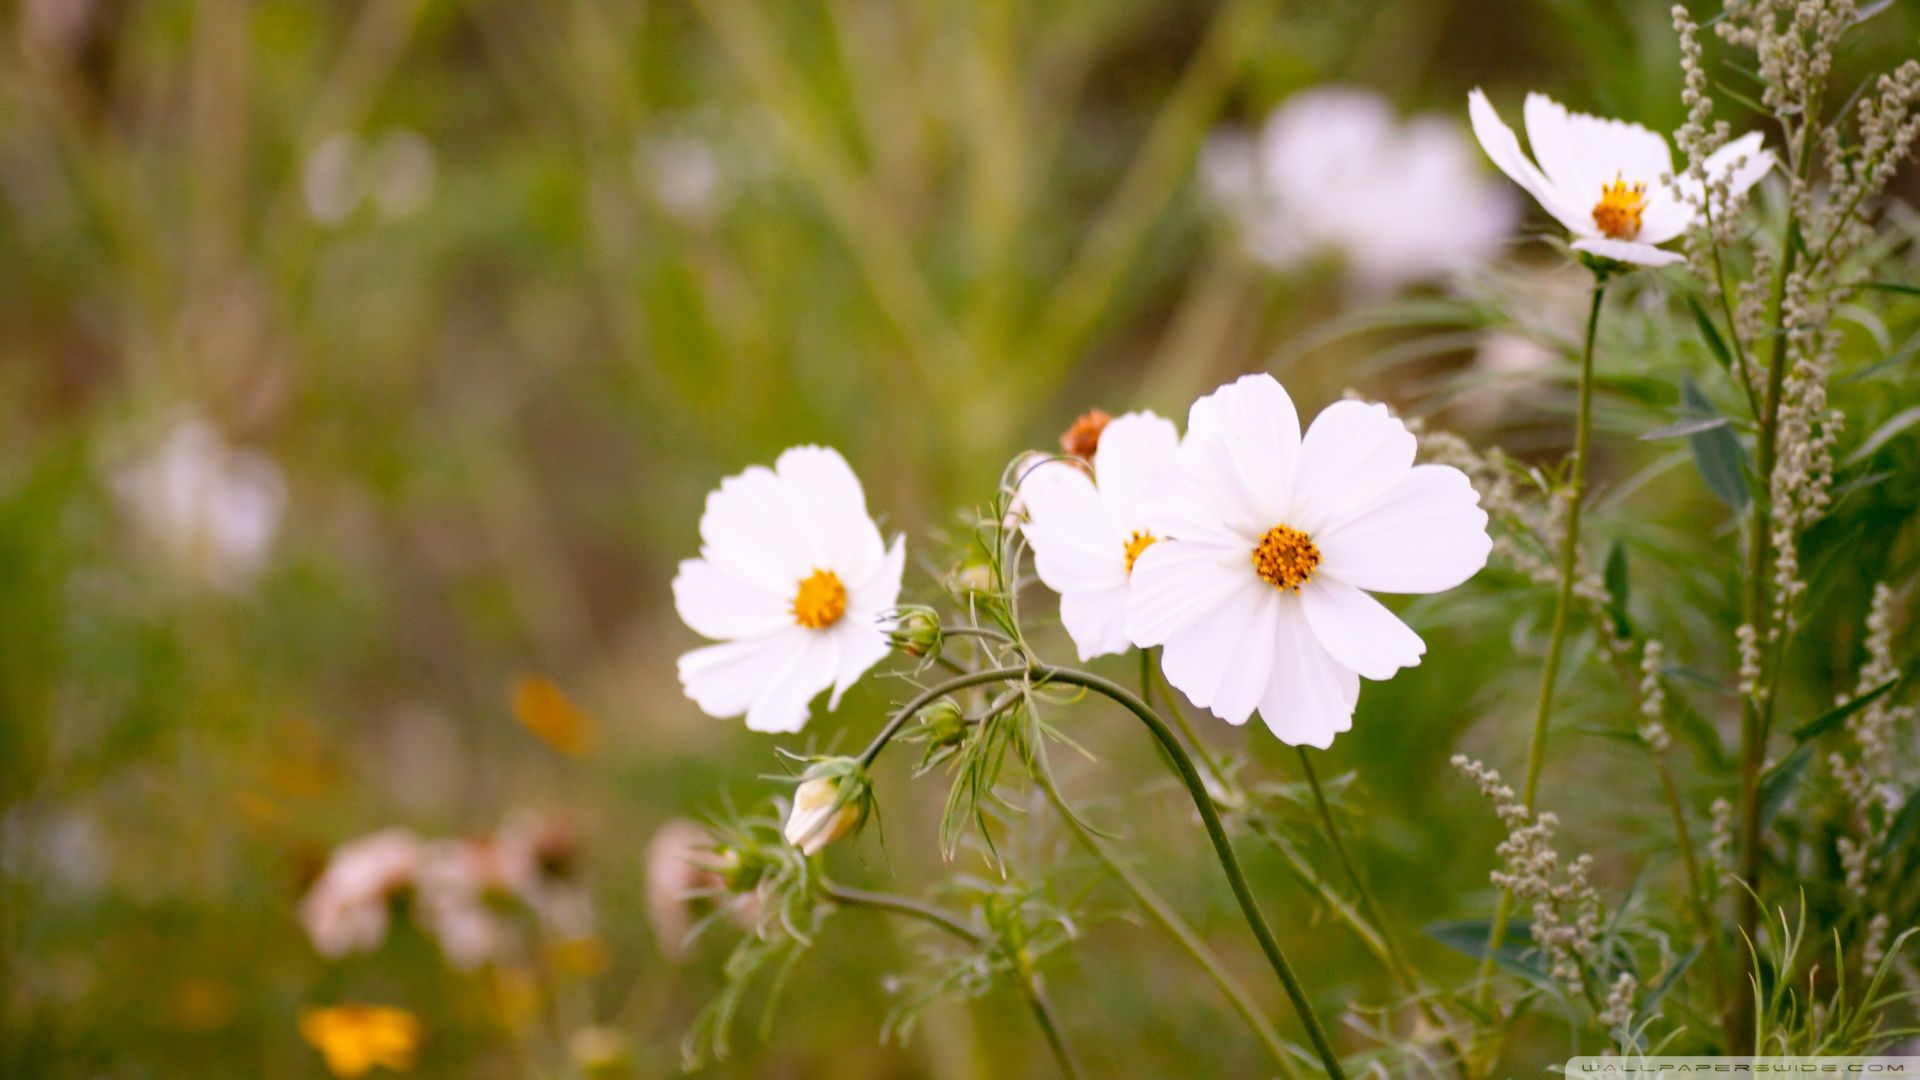 Pin By Beckey Douglas On Cosmos Flowers Cosmos Flowers Ipad Air Wallpaper Flower Branch